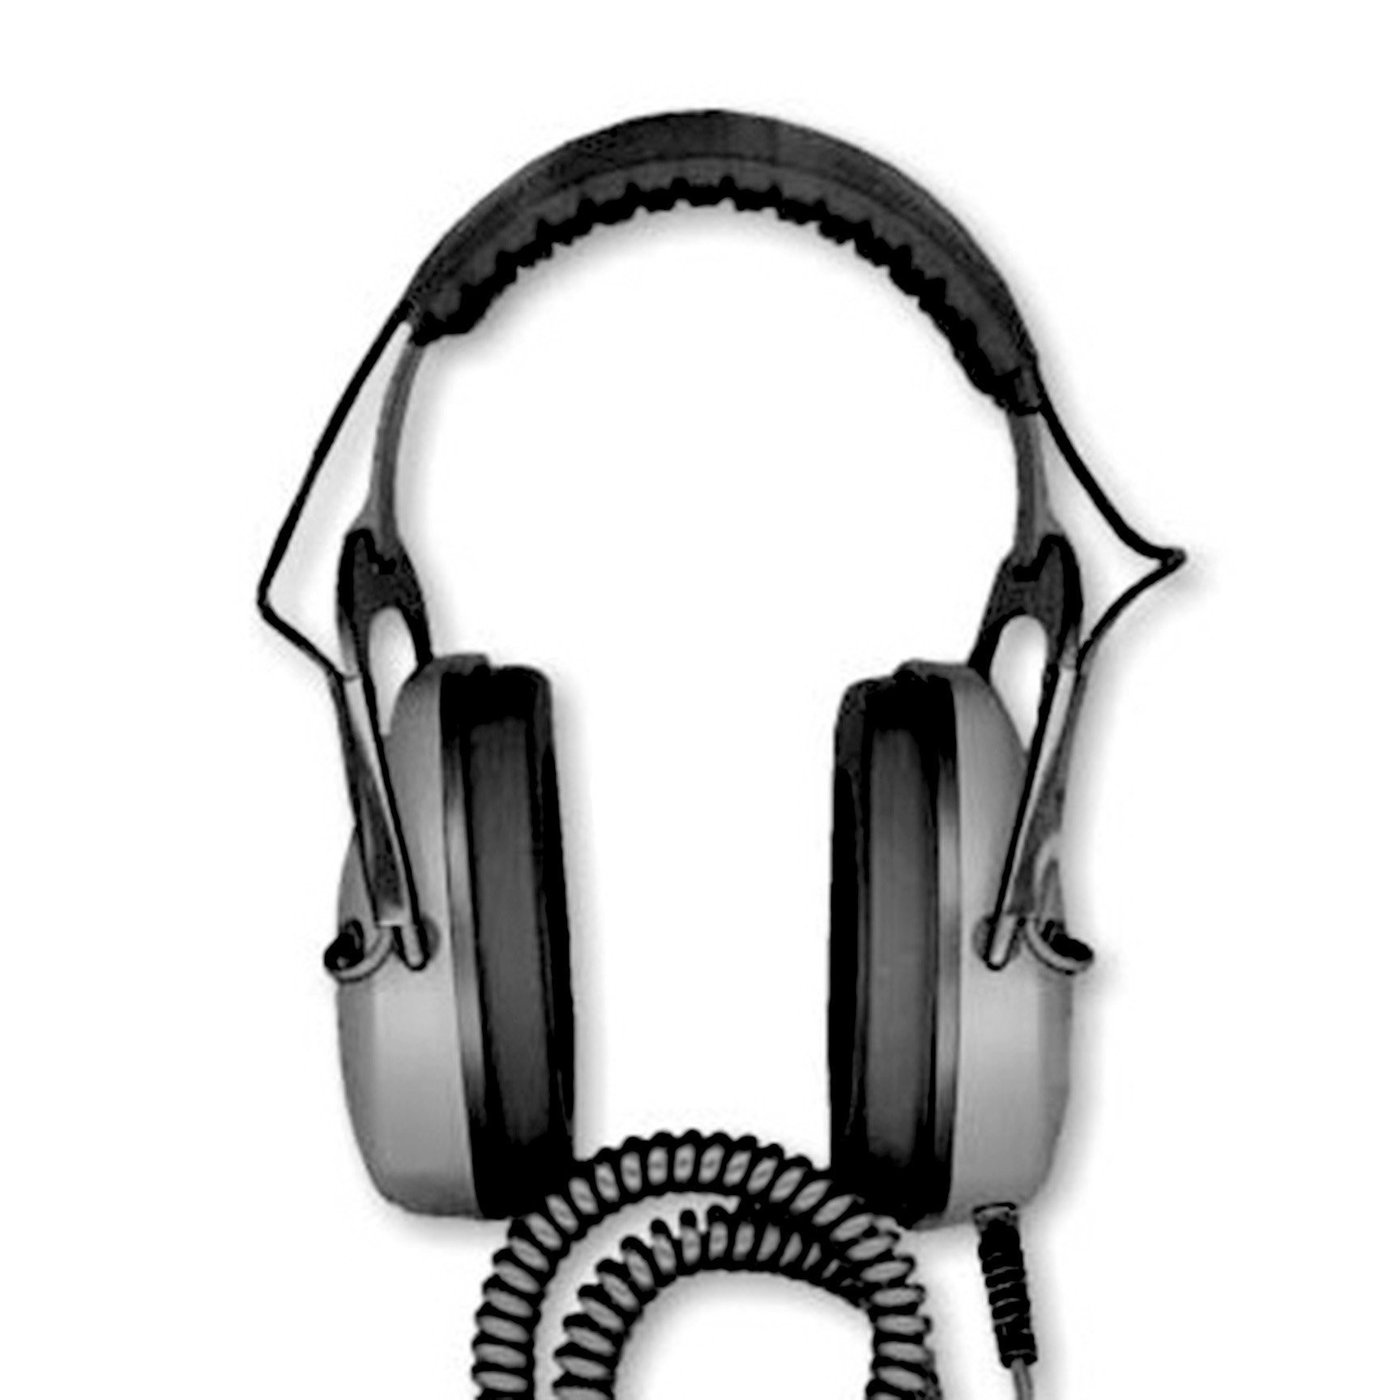 Grey Ghost Headphones with CTX 3030 Connector